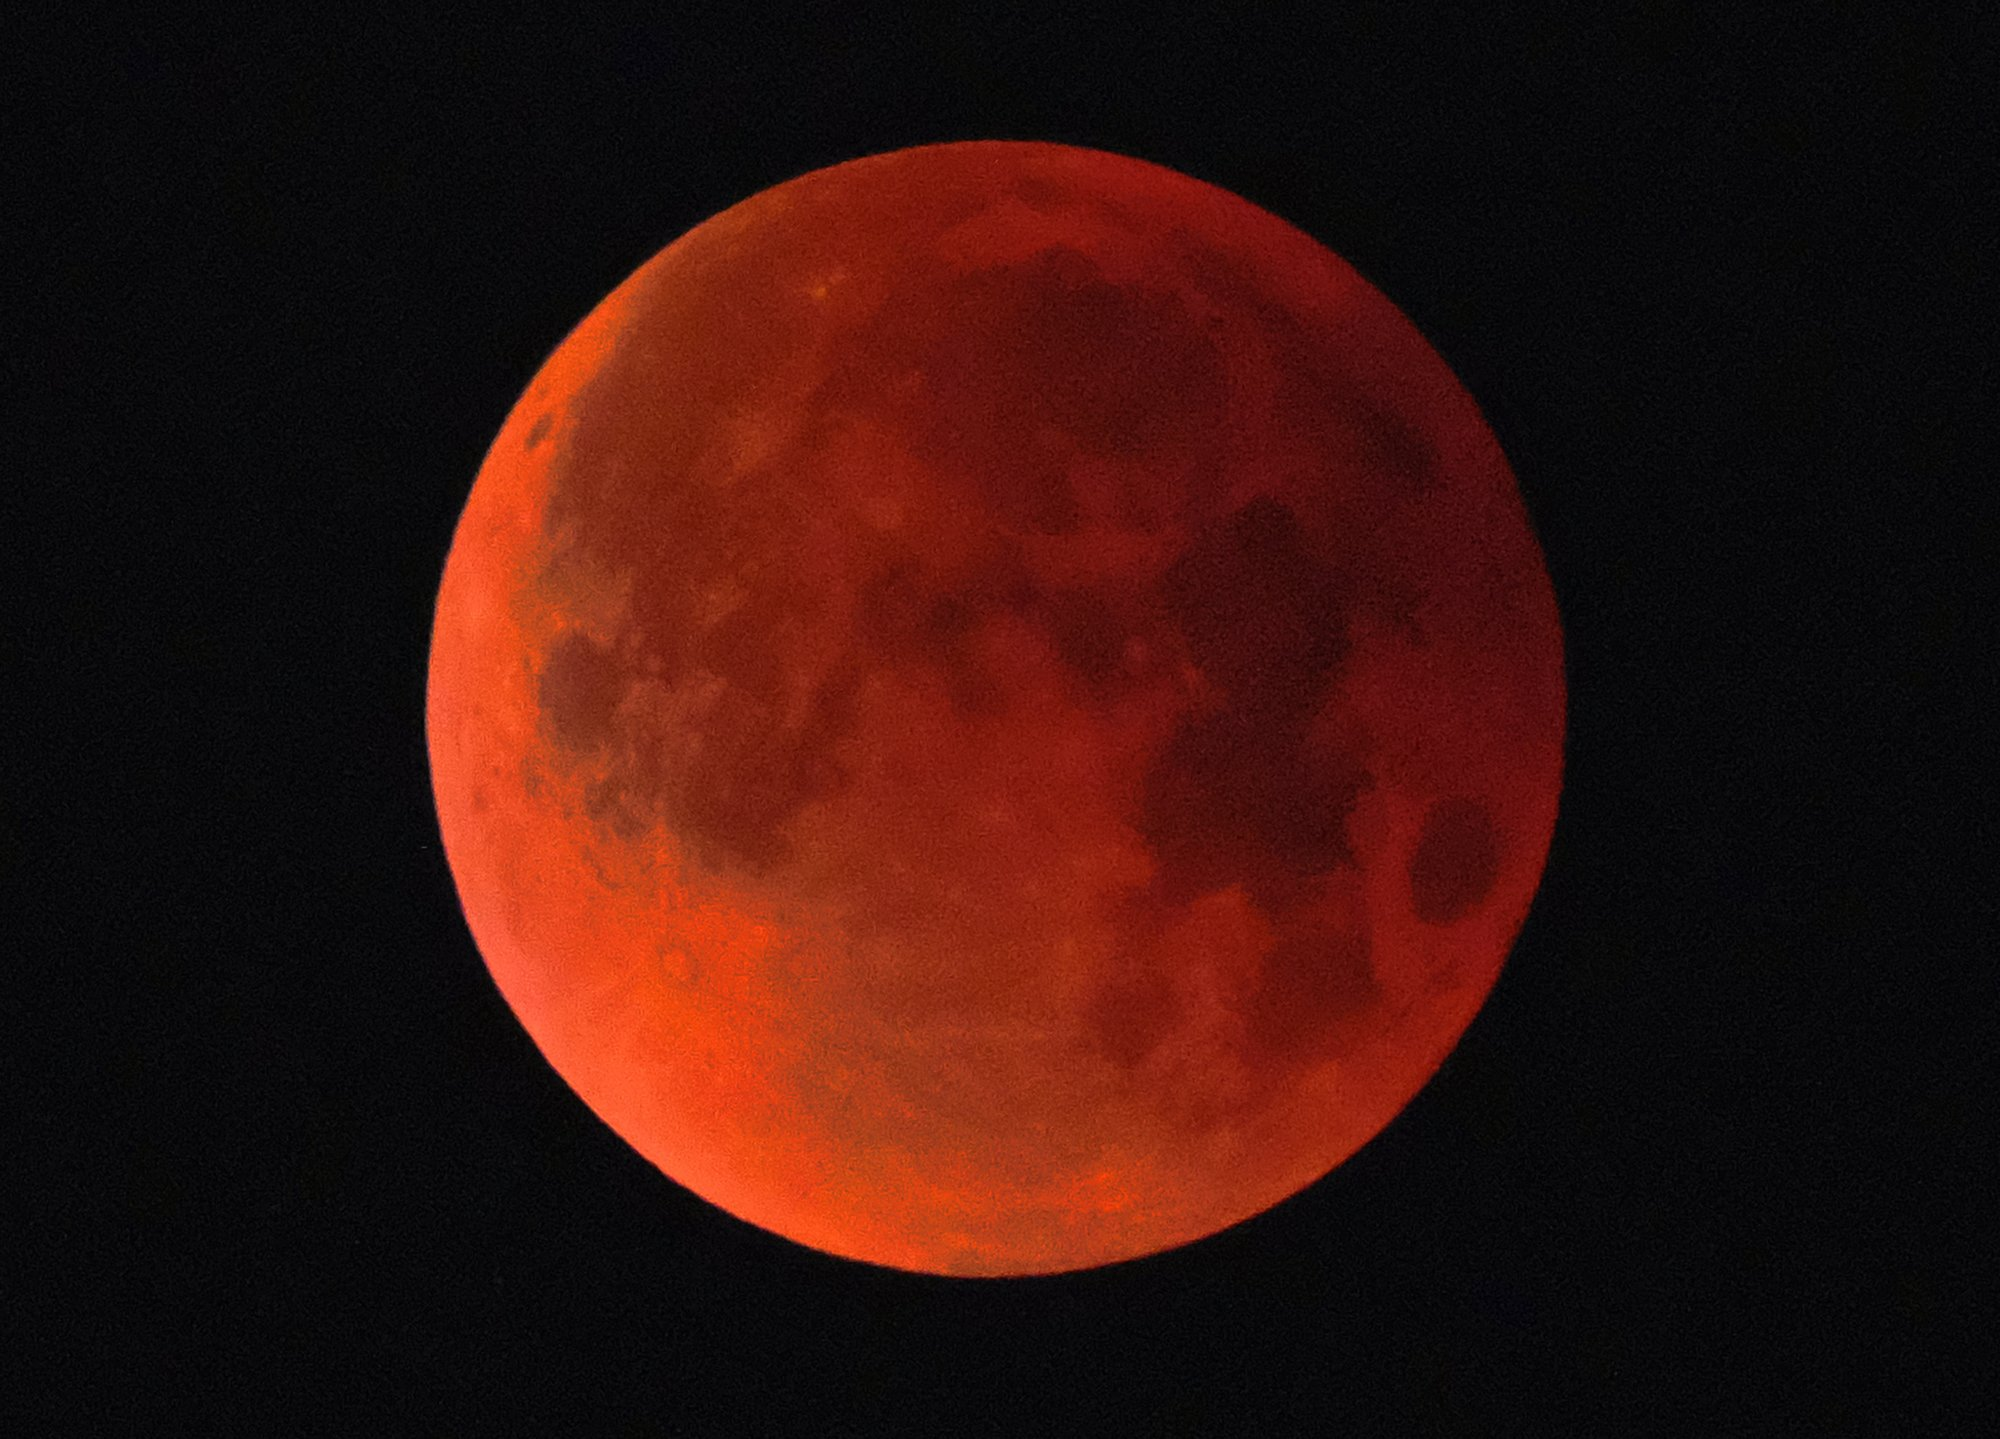 Lunar showstopper: Super blue blood moon awes and wows